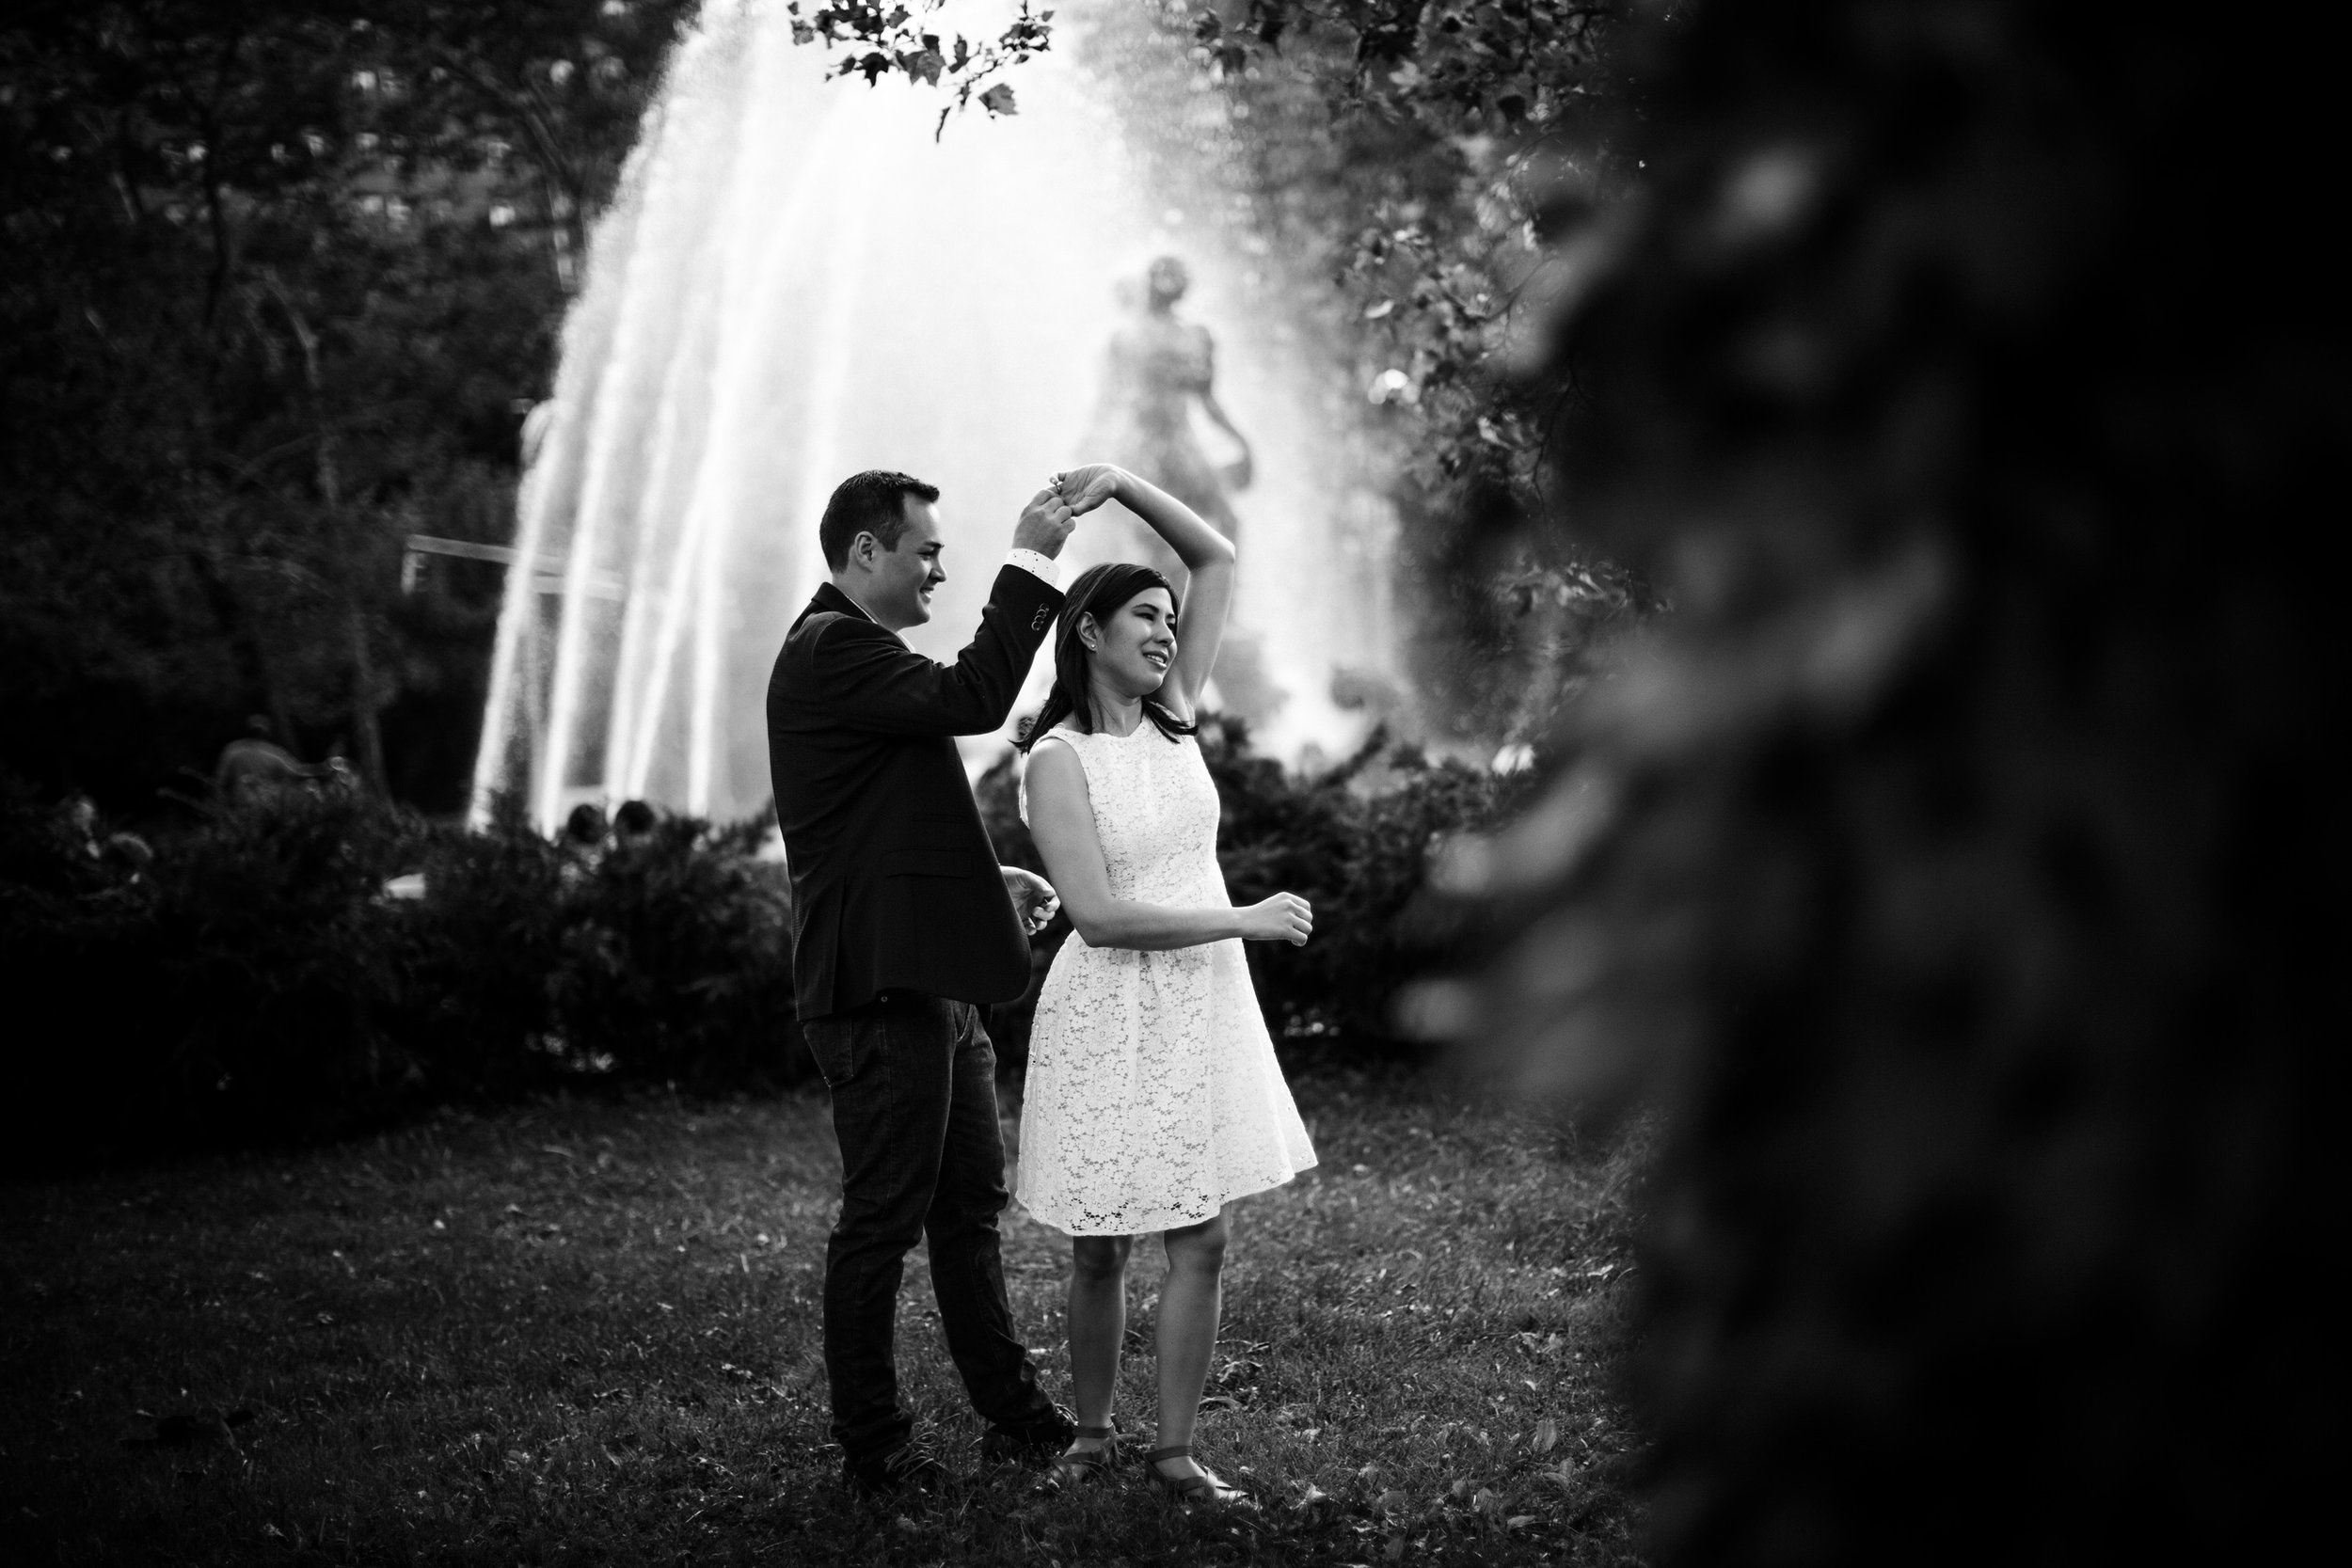 dancing_in_the_park_tiny_house_photo_moments_fountain_nyc_love_photography.jpg